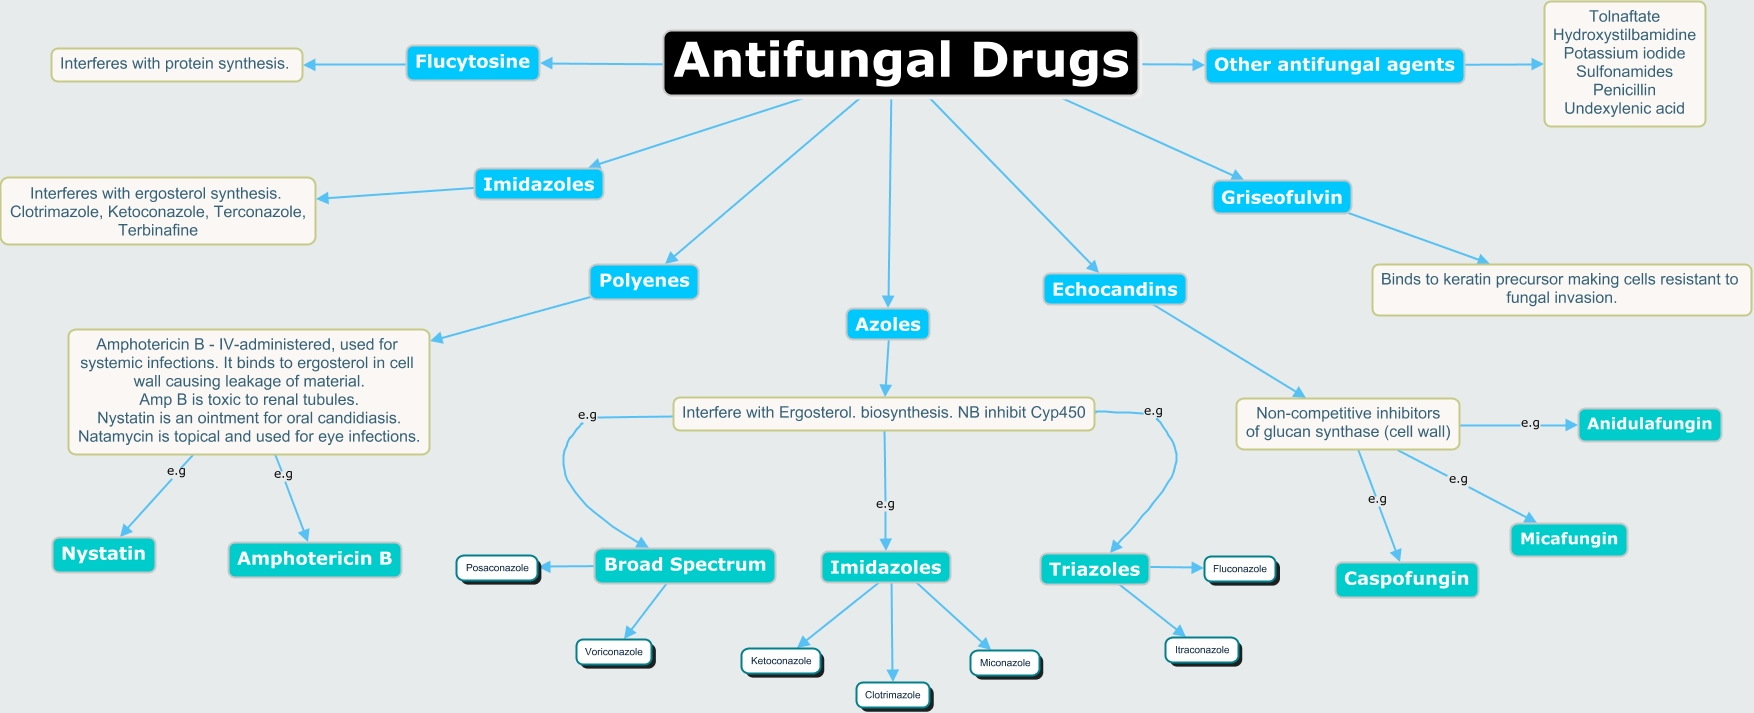 Antifungal medication - ScienceDirect Topics